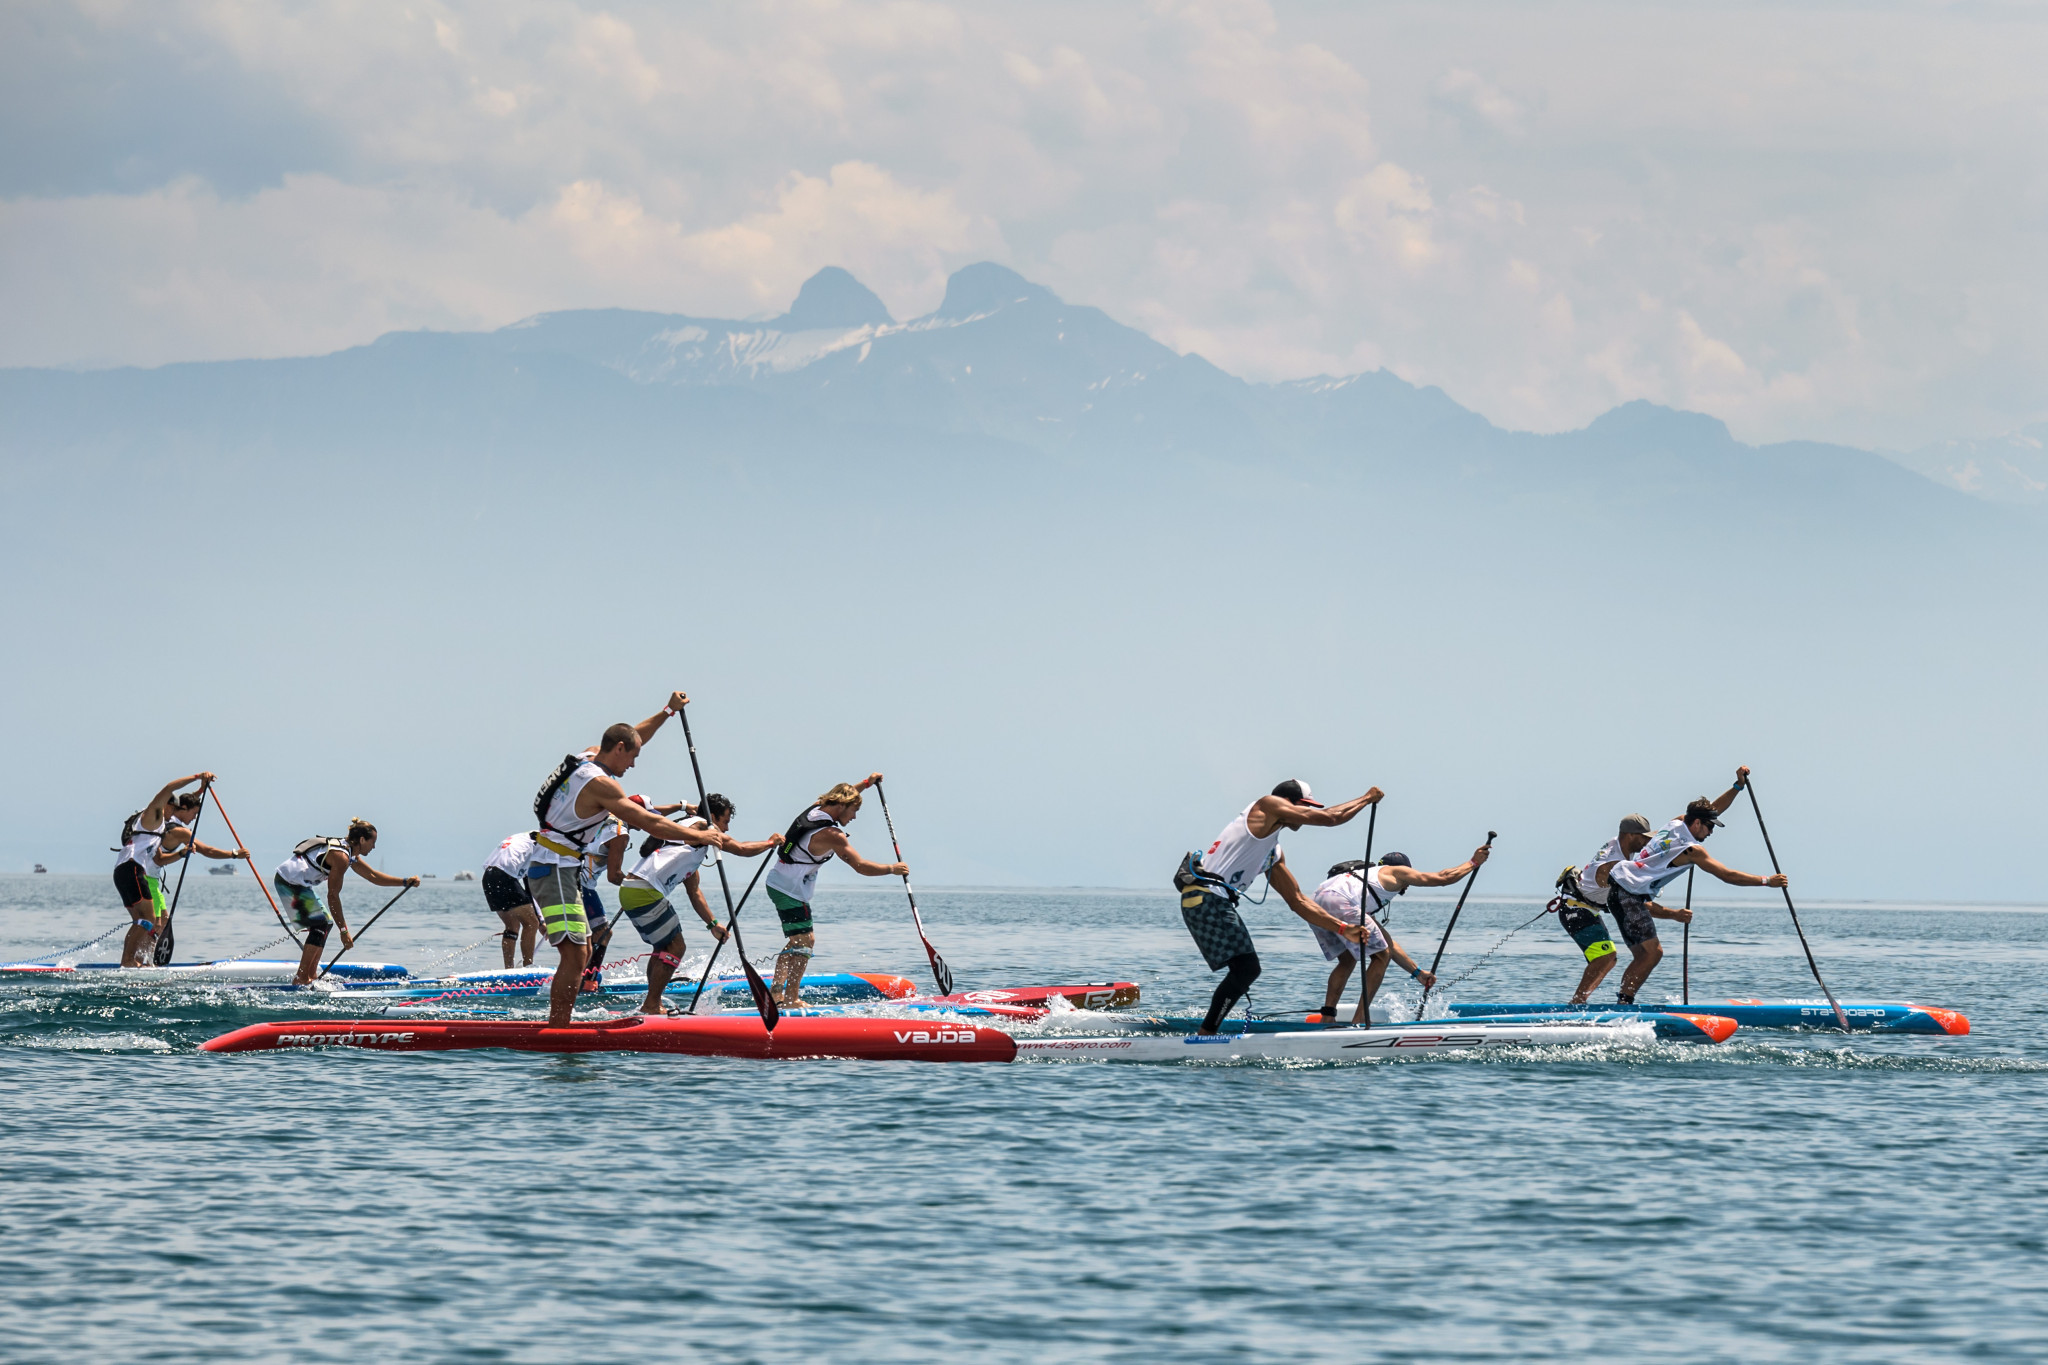 ICF announce plans to host 2019 Stand-Up Paddleboard World Championships in decision which will anger ISA